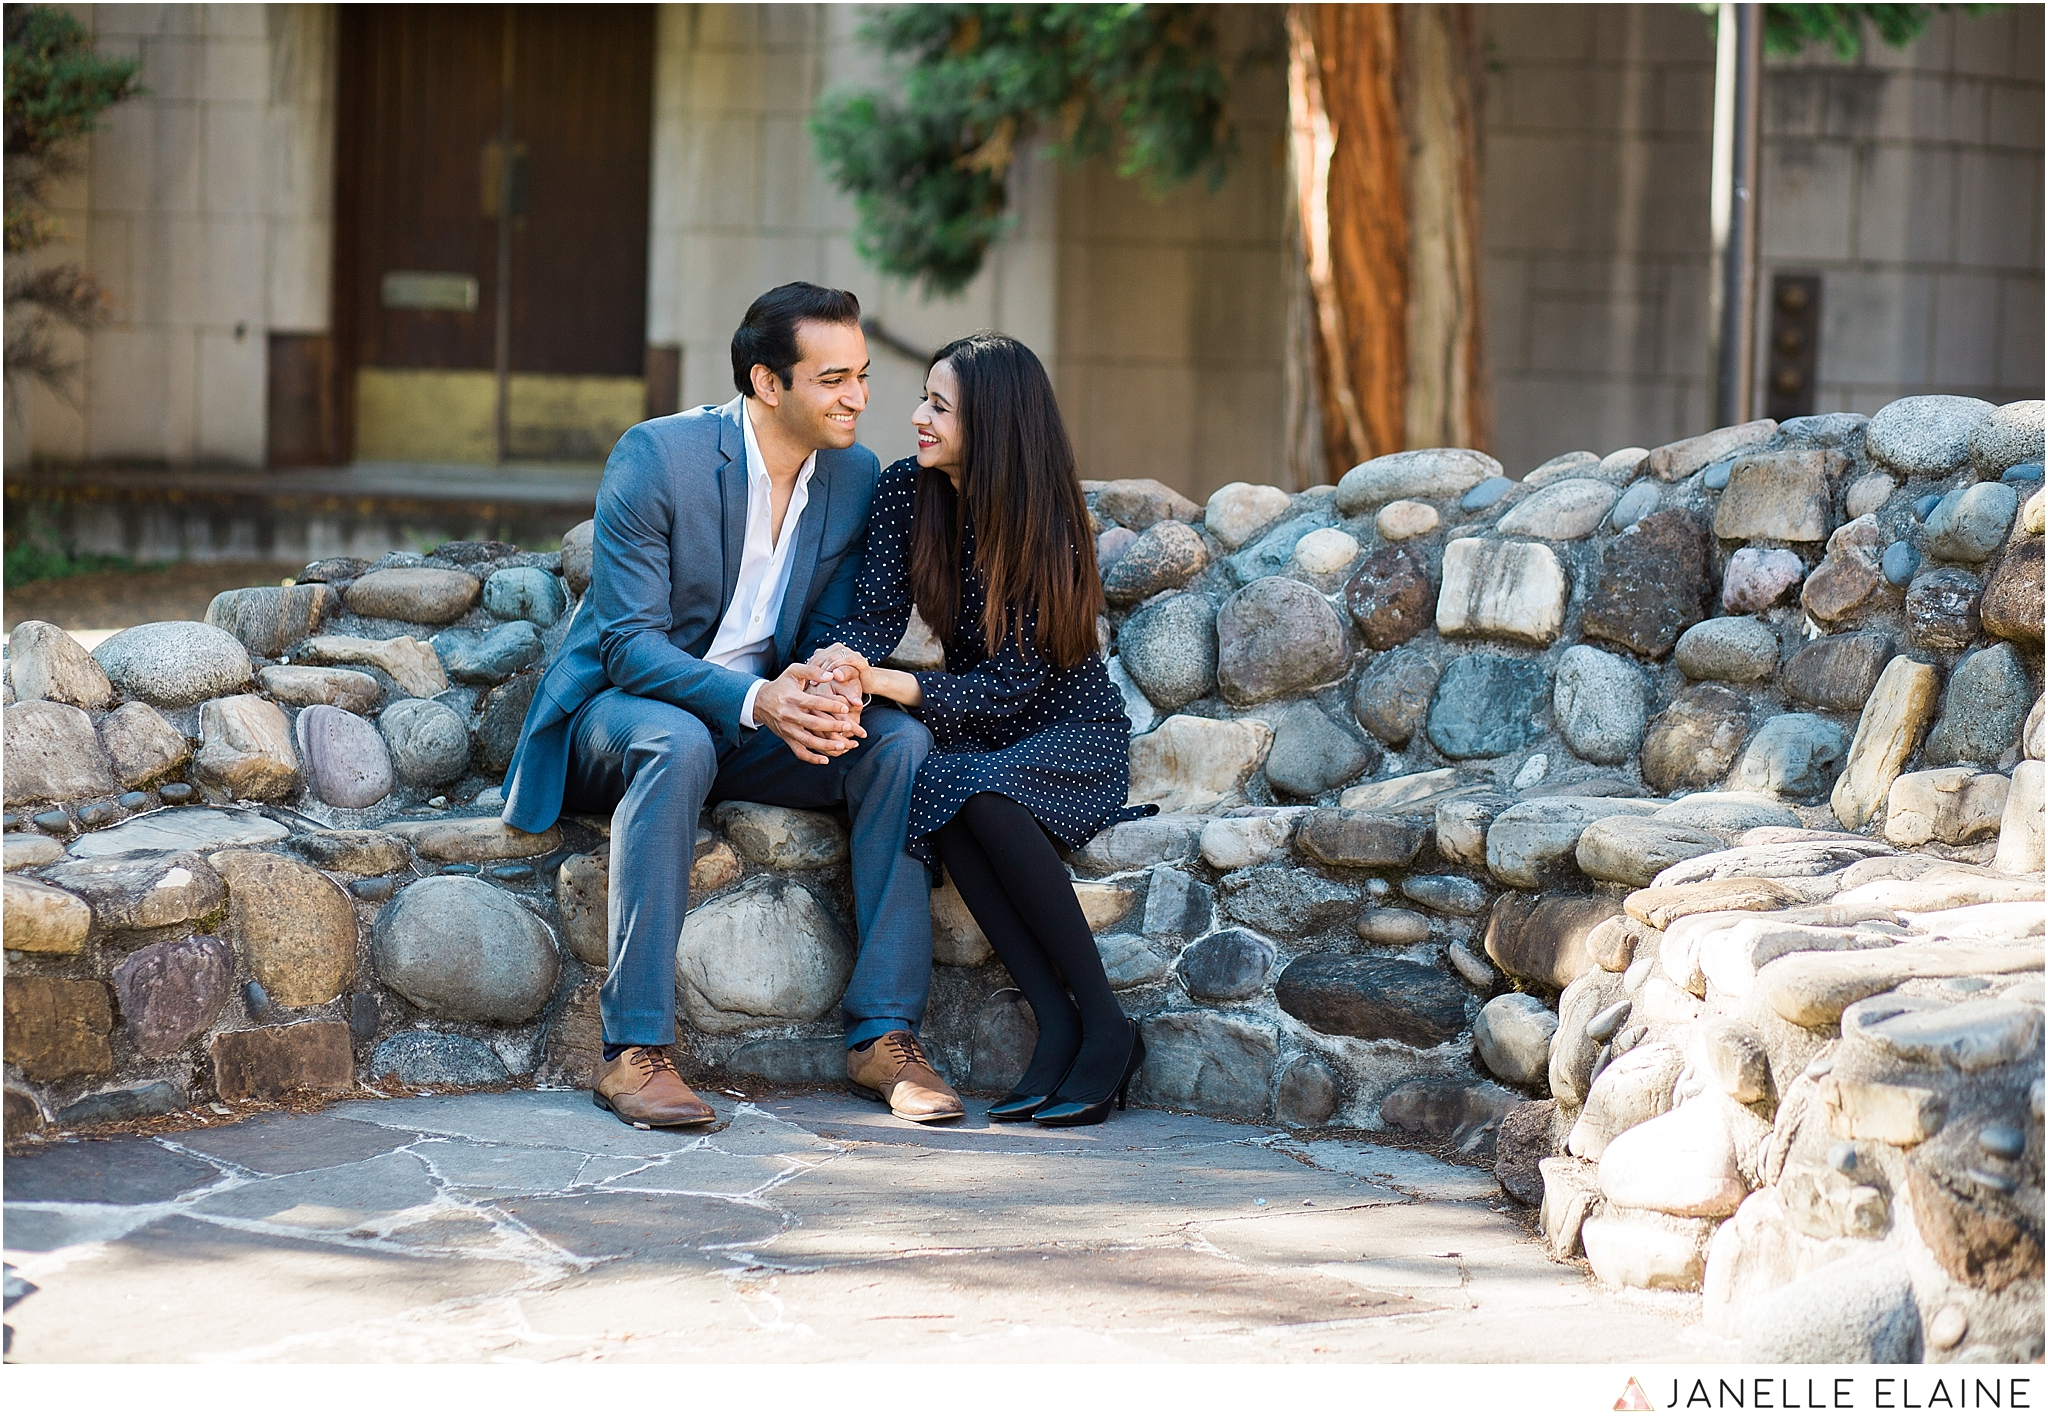 janelle elaine photography-zain and umema-seattle-uw-red square-engagement-photographer-102.jpg